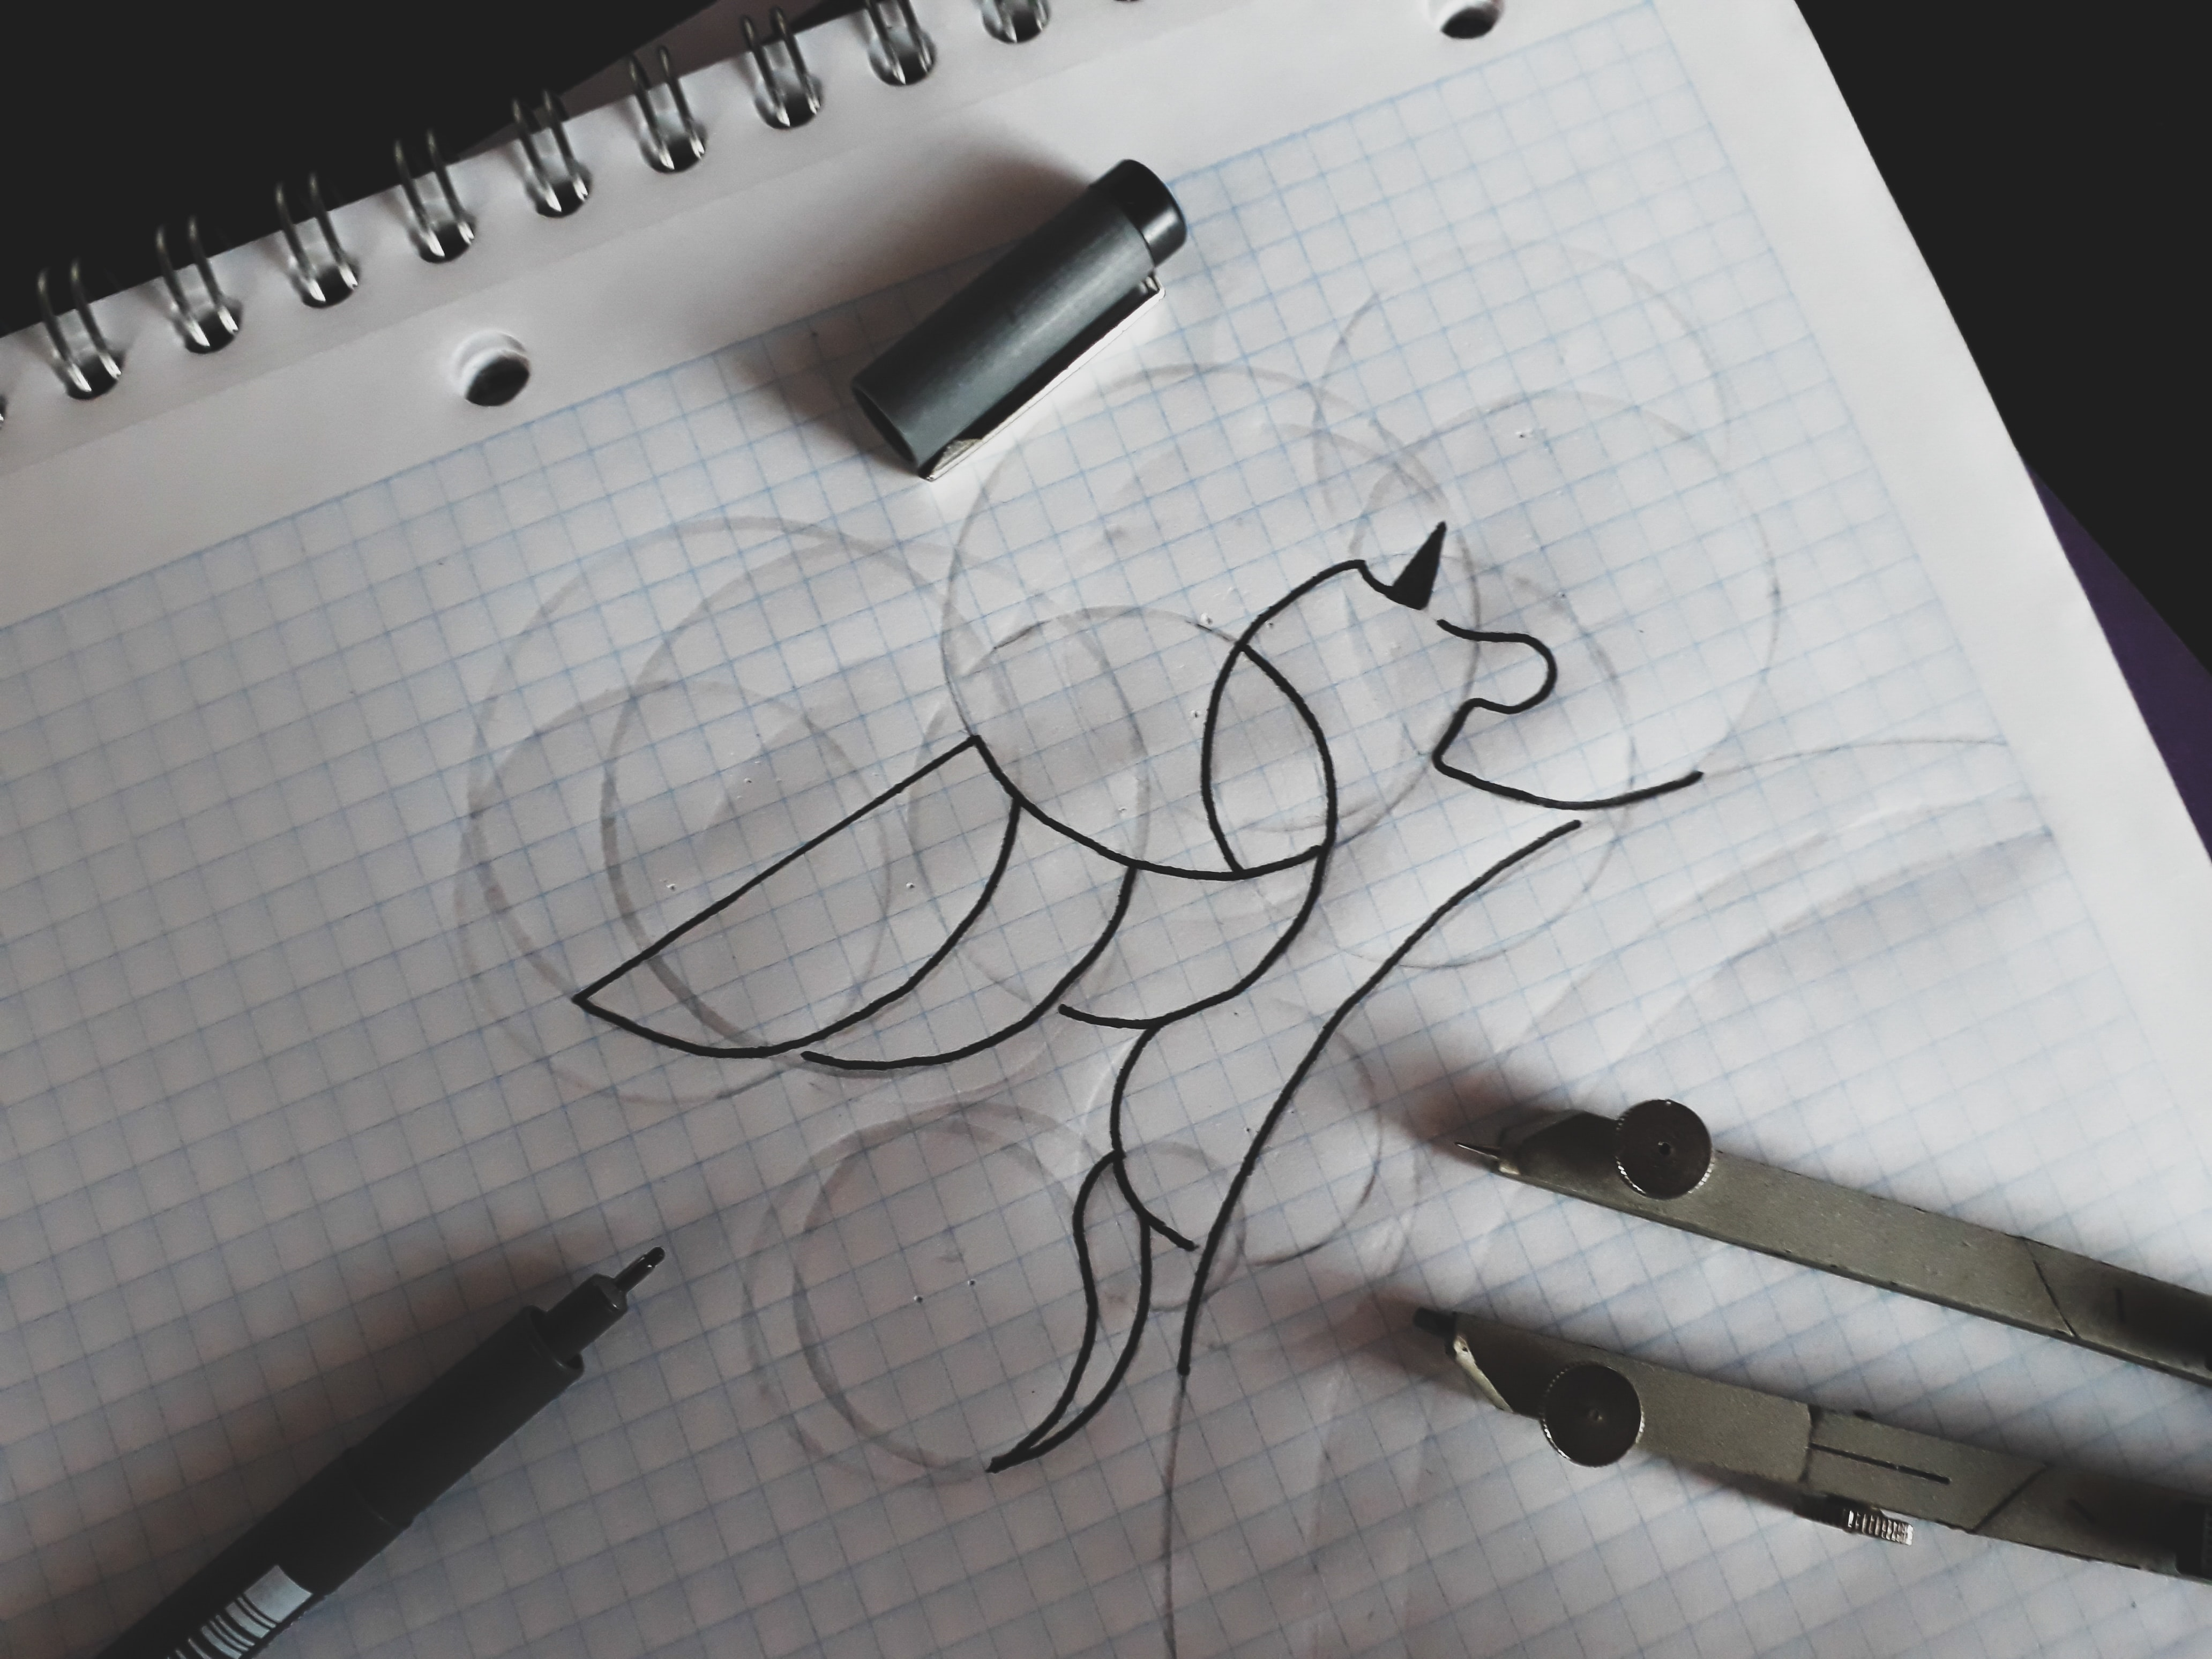 An abstract animal drawing with a black pen.